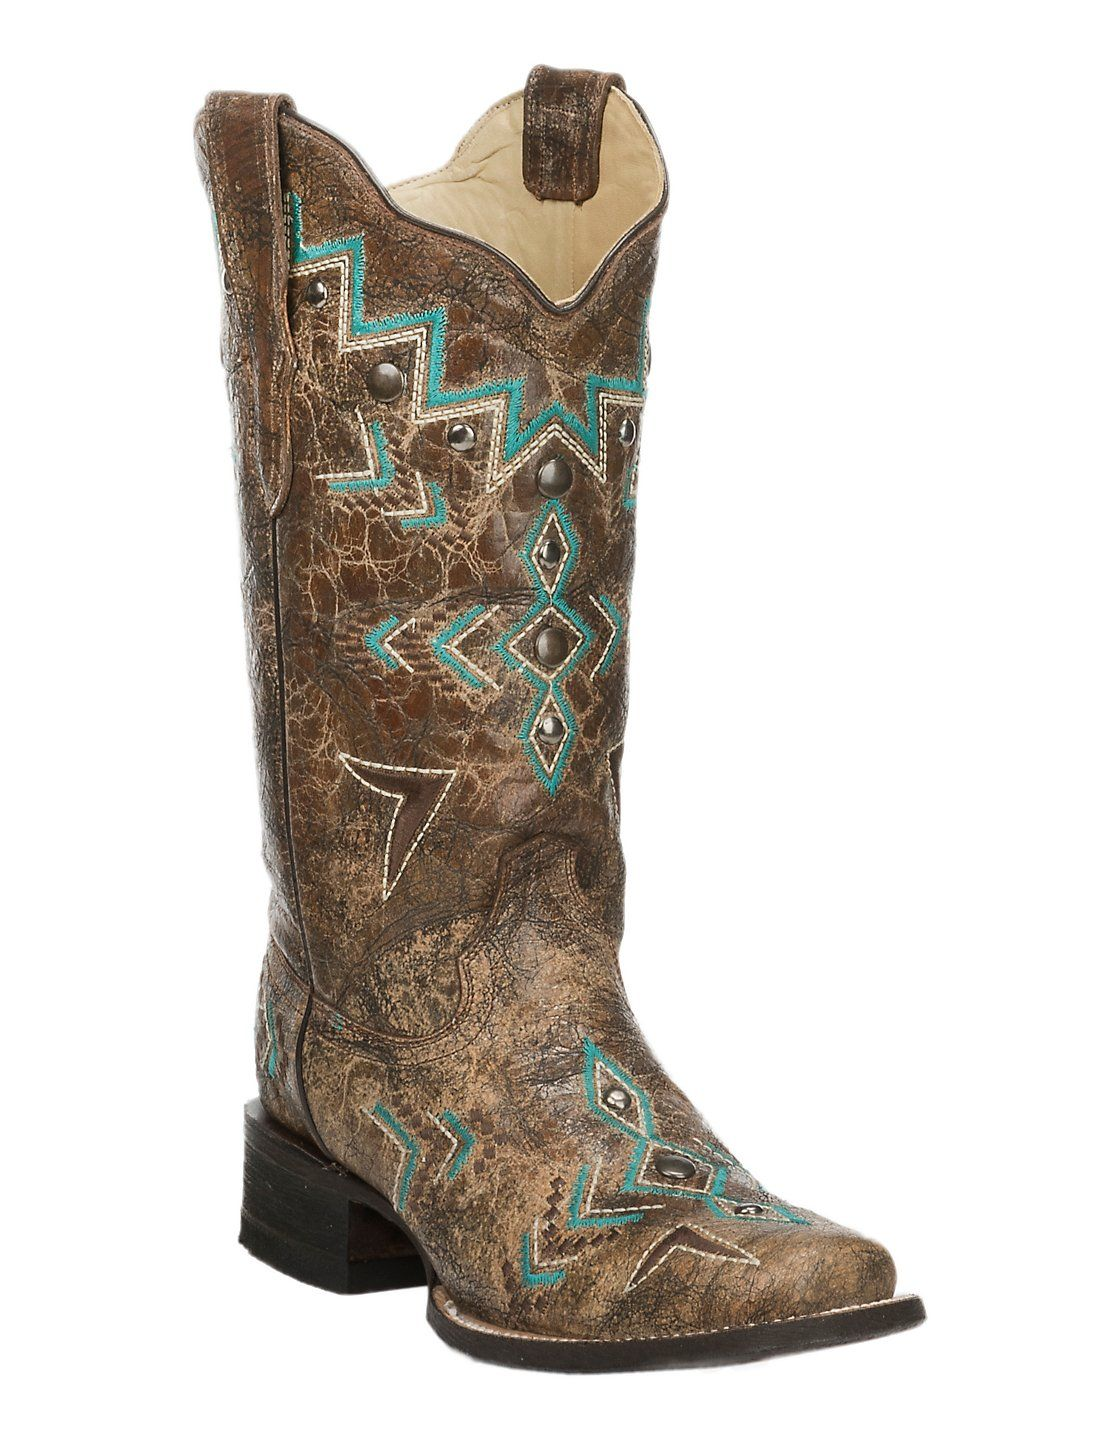 Corral Damens's Bronze with Turquoise Aztec Embroidery Embroidery Embroidery Square Toe 452884